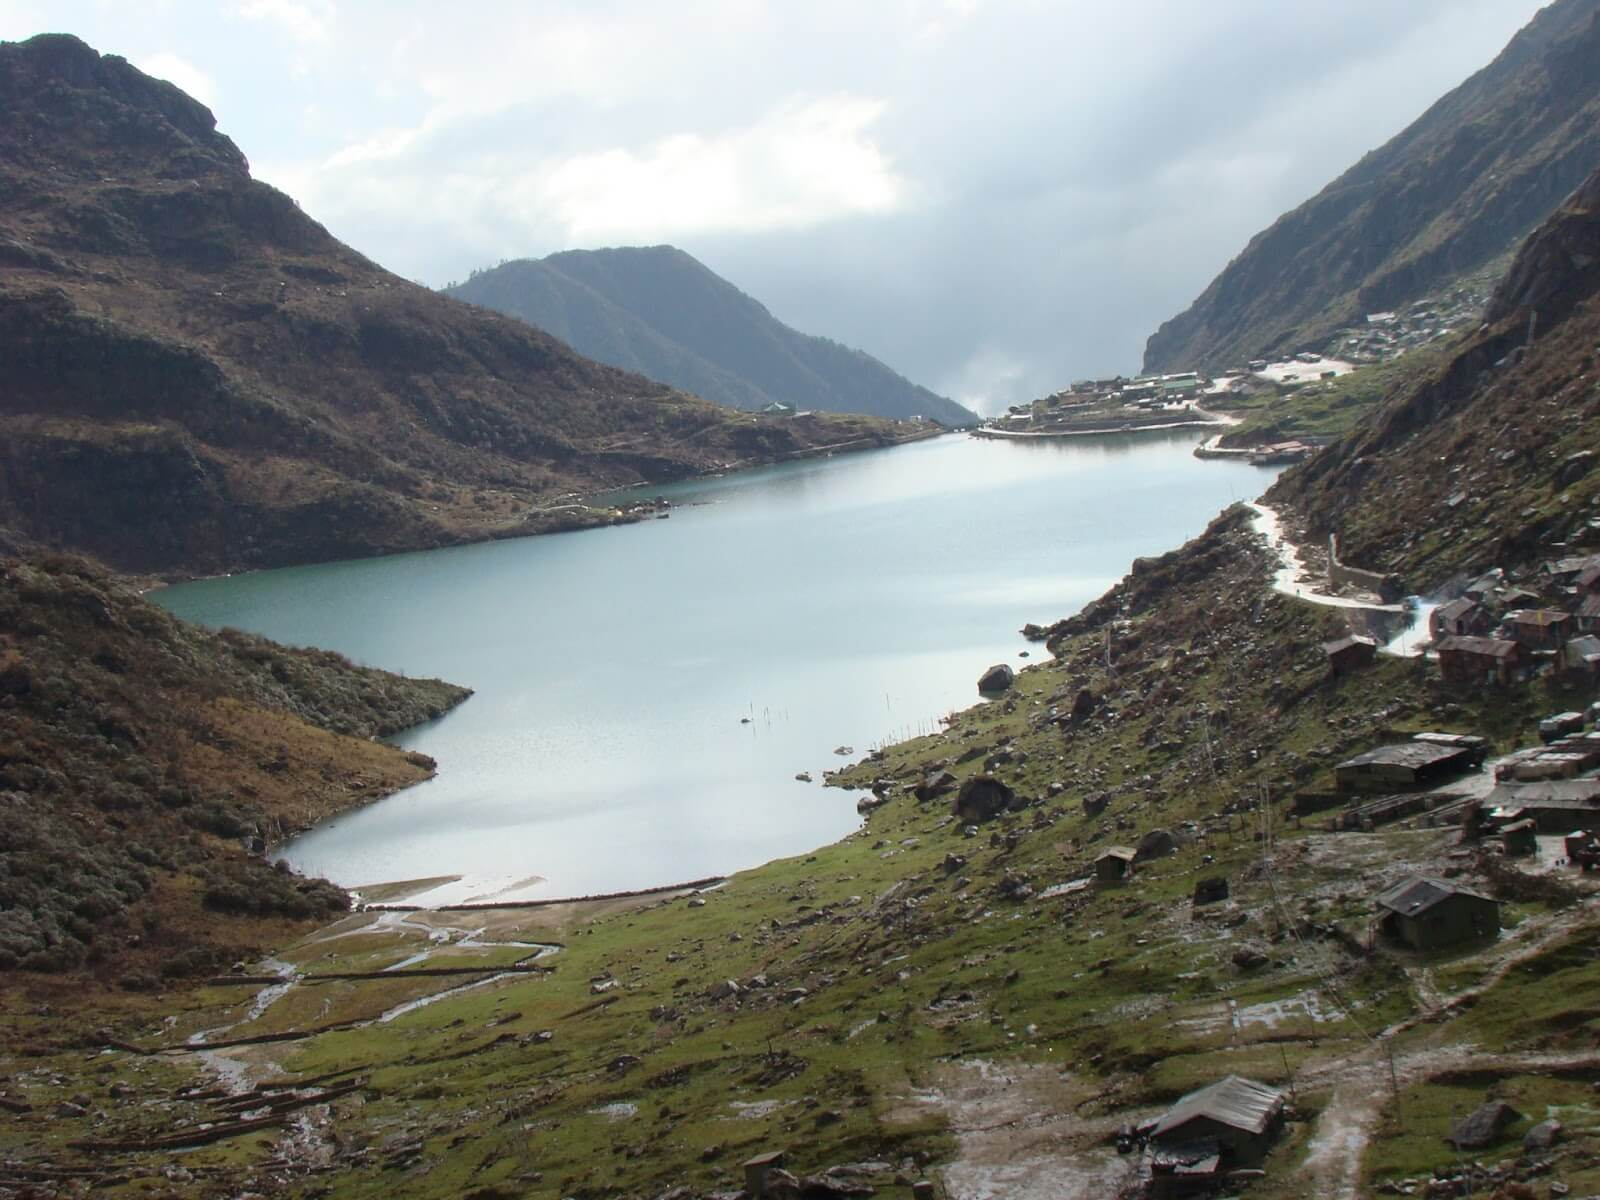 sikkim-darjeeling-travelco-tour-packages-5